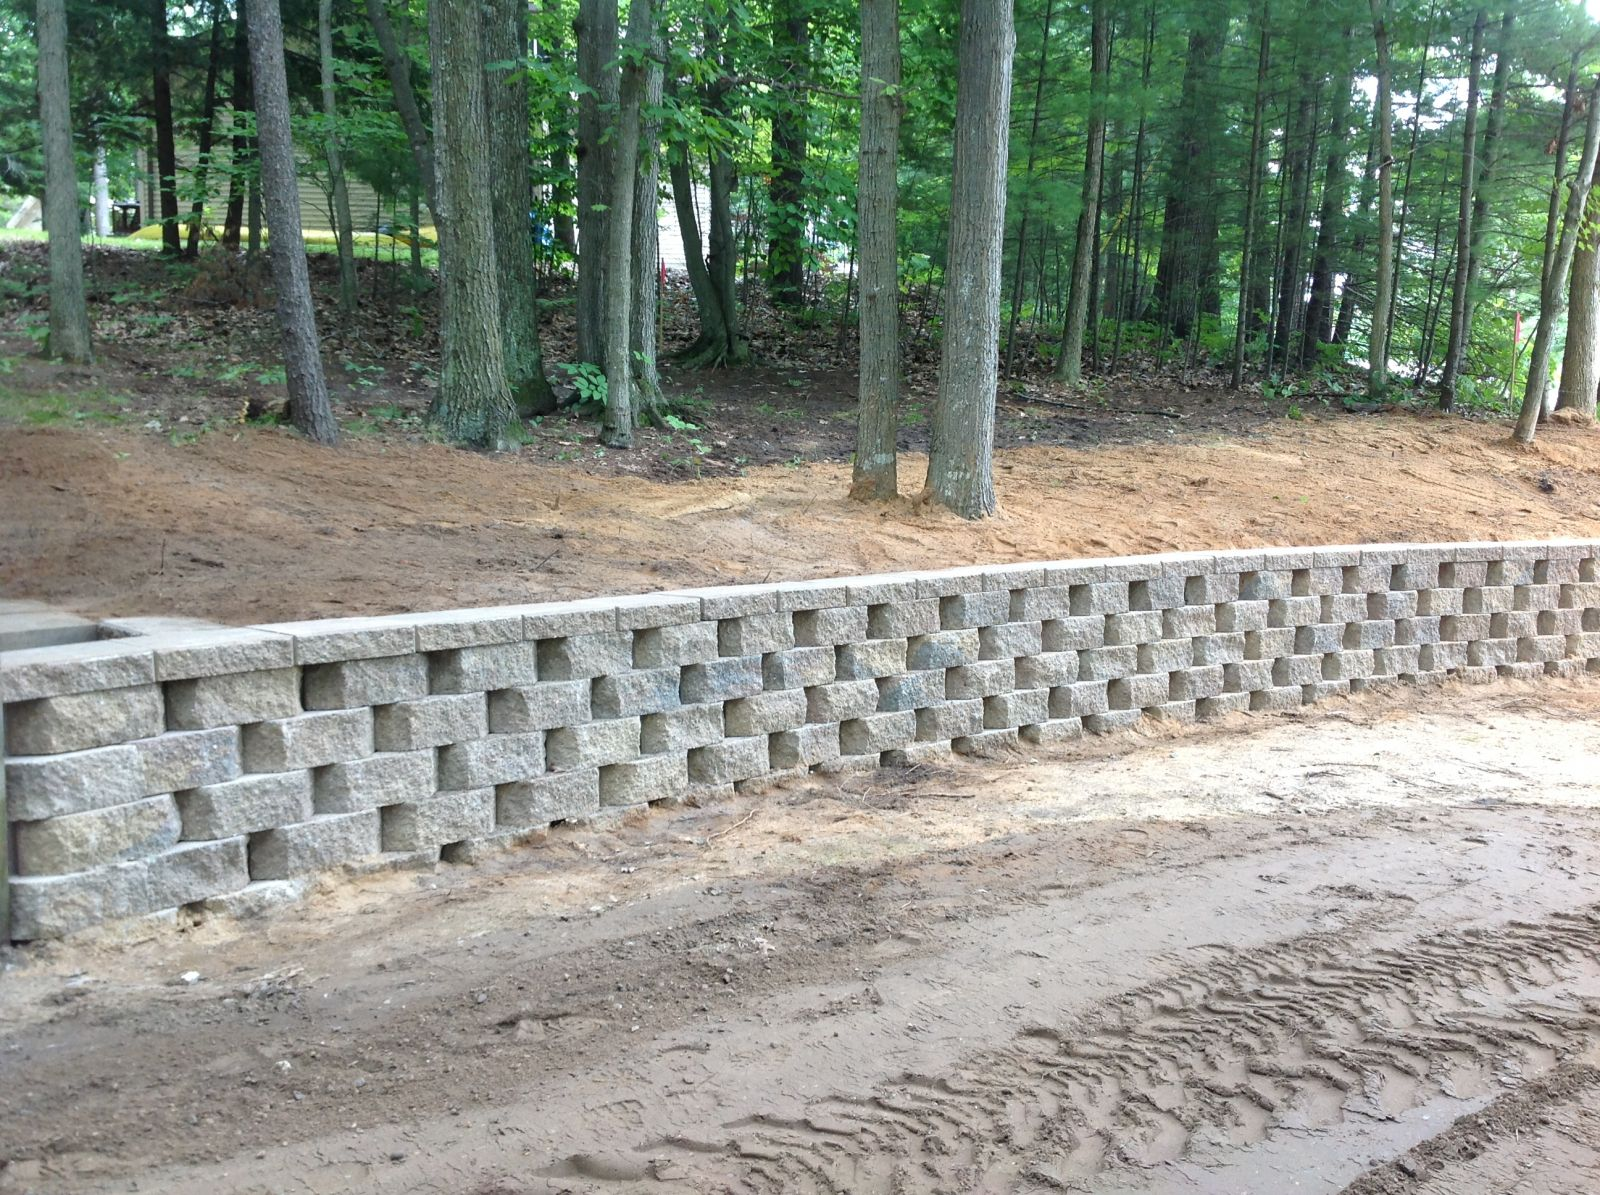 Retaining Wall in woods